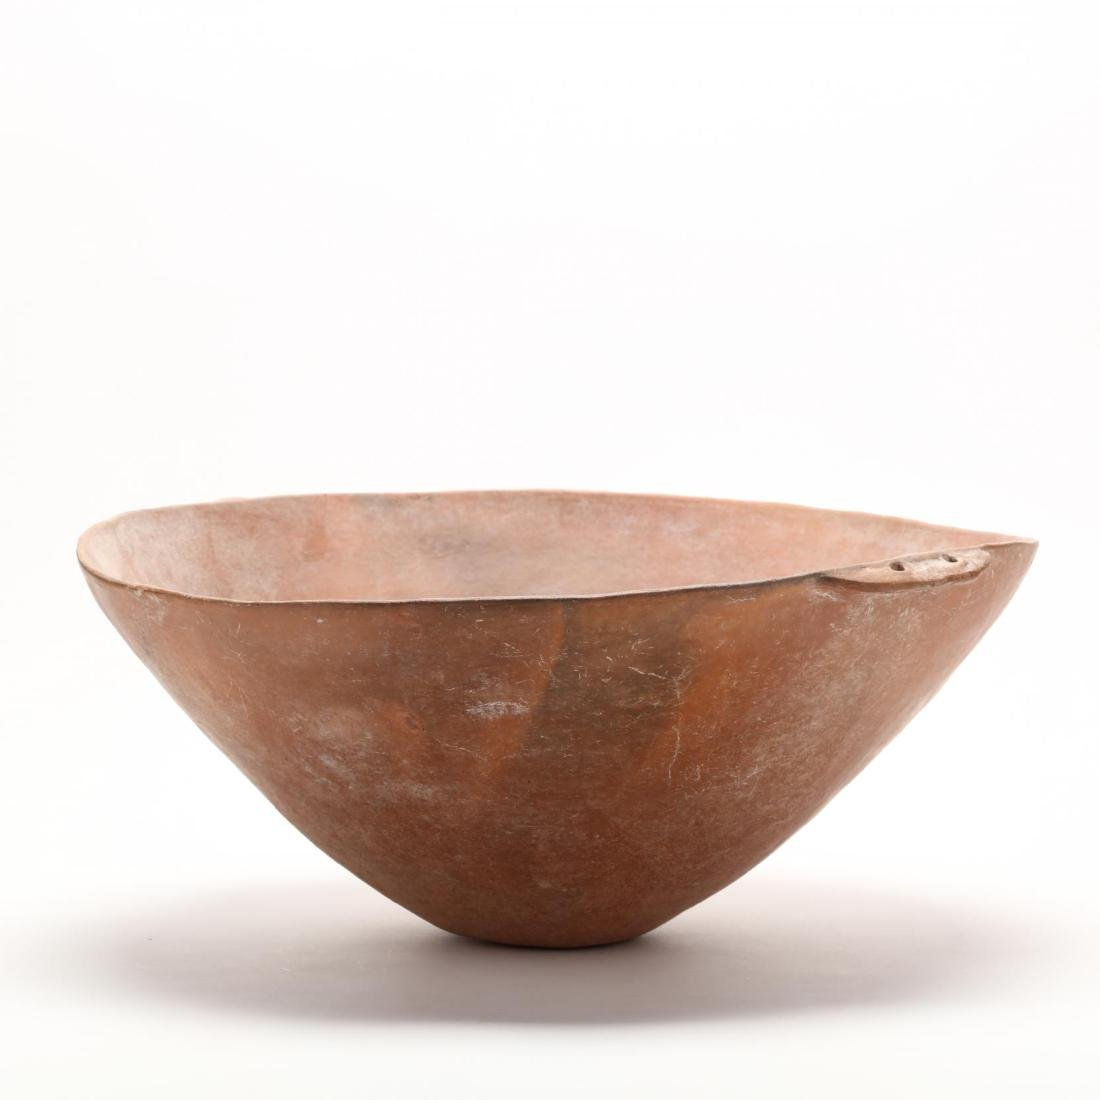 Cypriot Bronze Age Large Polished Red Ware Bowl - 5